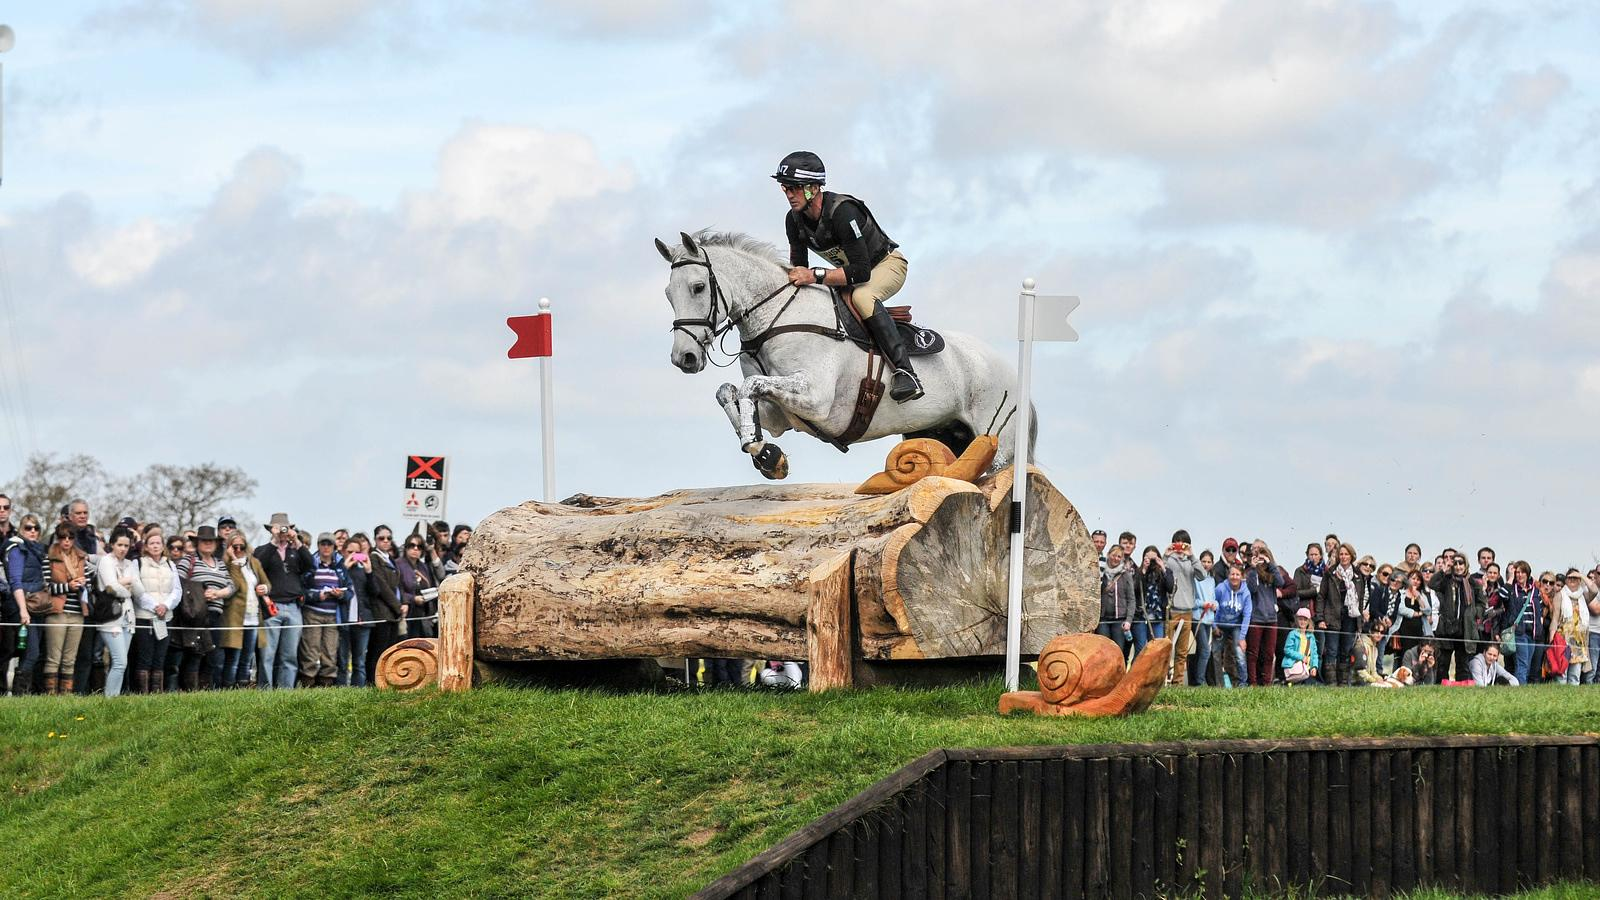 Andrew Nicholson with Avebury at the Mitsubishi Motors Badminton Horse Trials